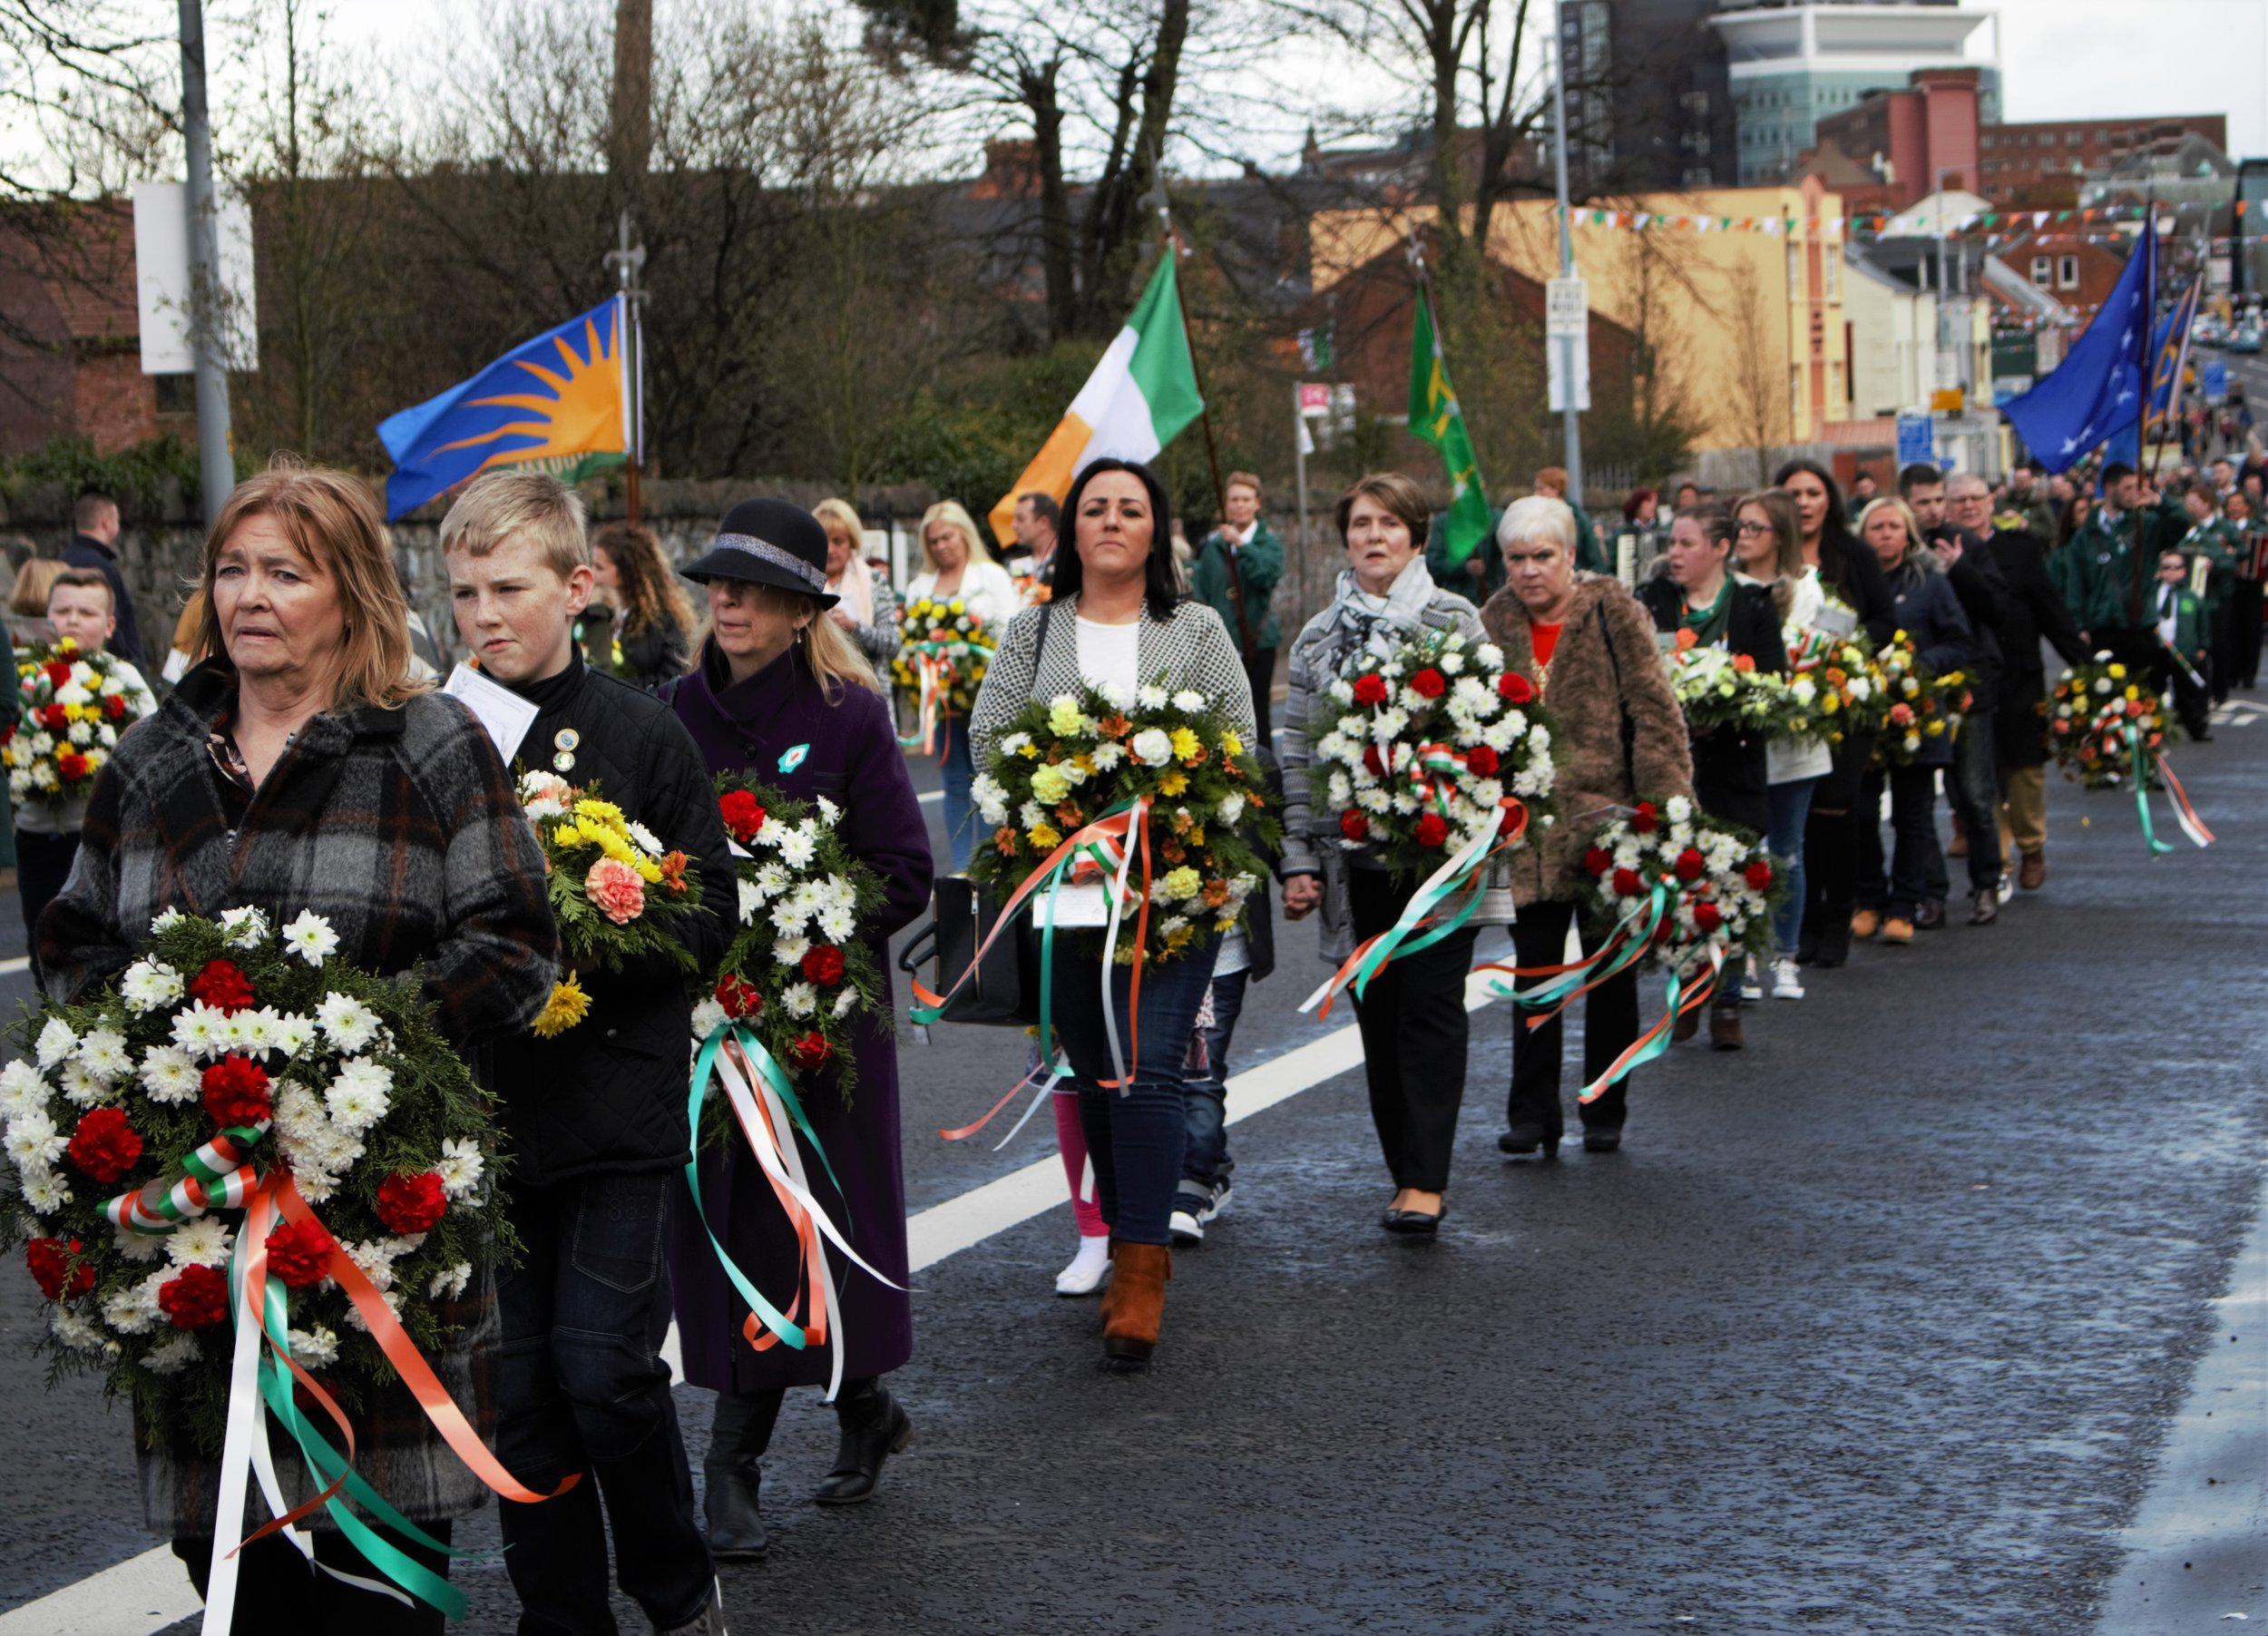 Belfast, Northern Ireland. A memorial parade takes place for Irish republicans killed during the troubles.